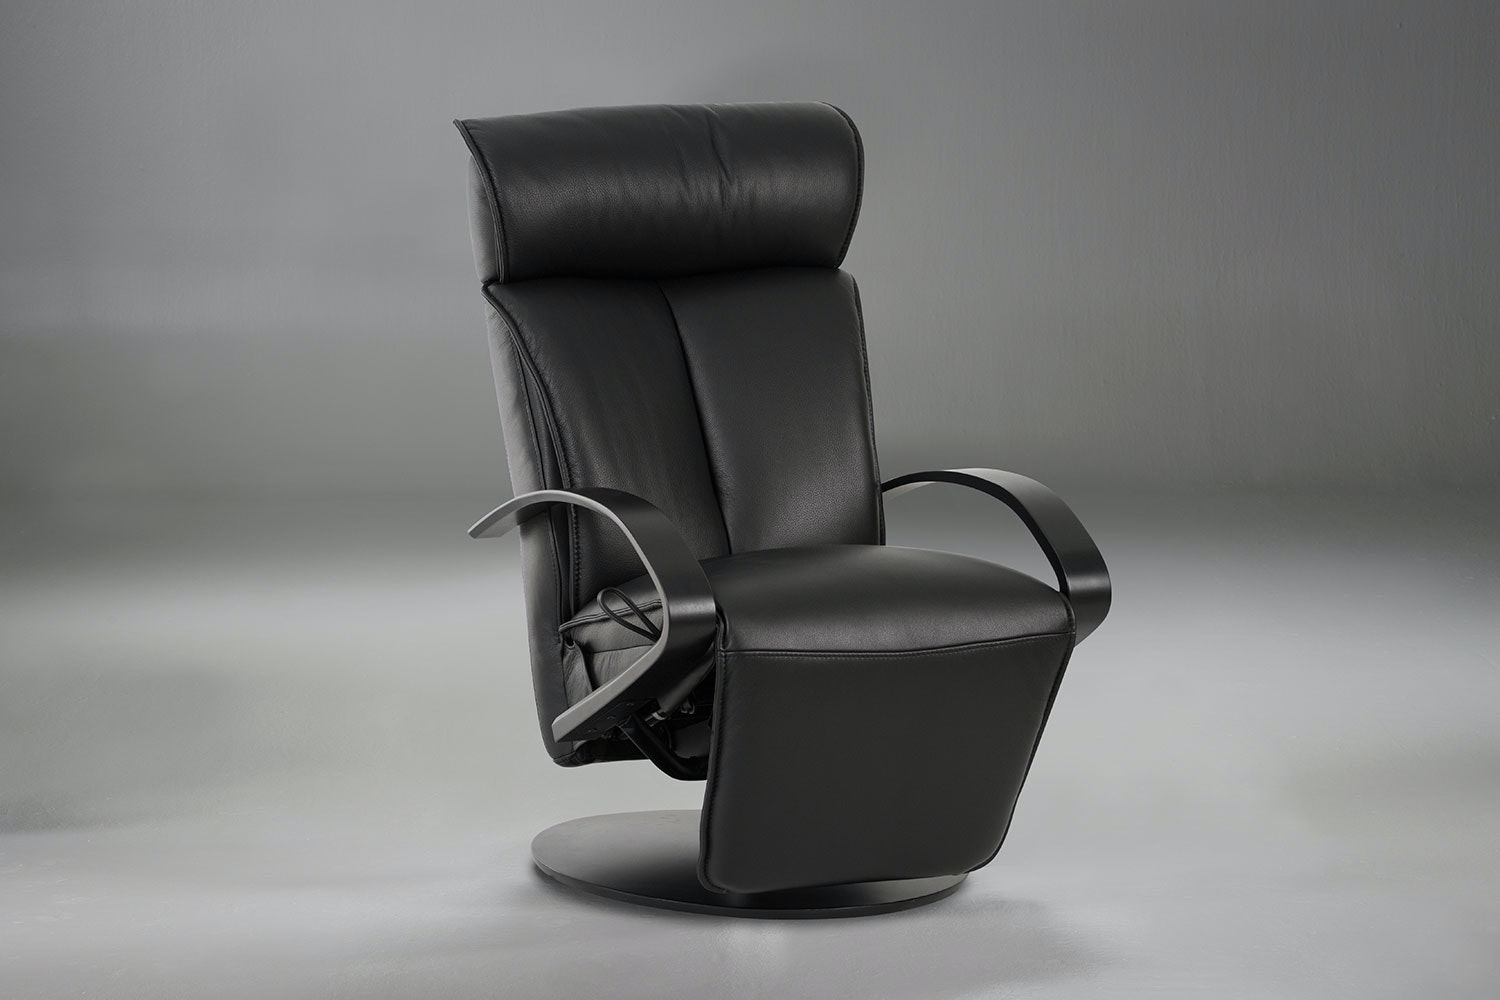 Leather Recliner Chairs ... : leather recliner chair and footstool - islam-shia.org